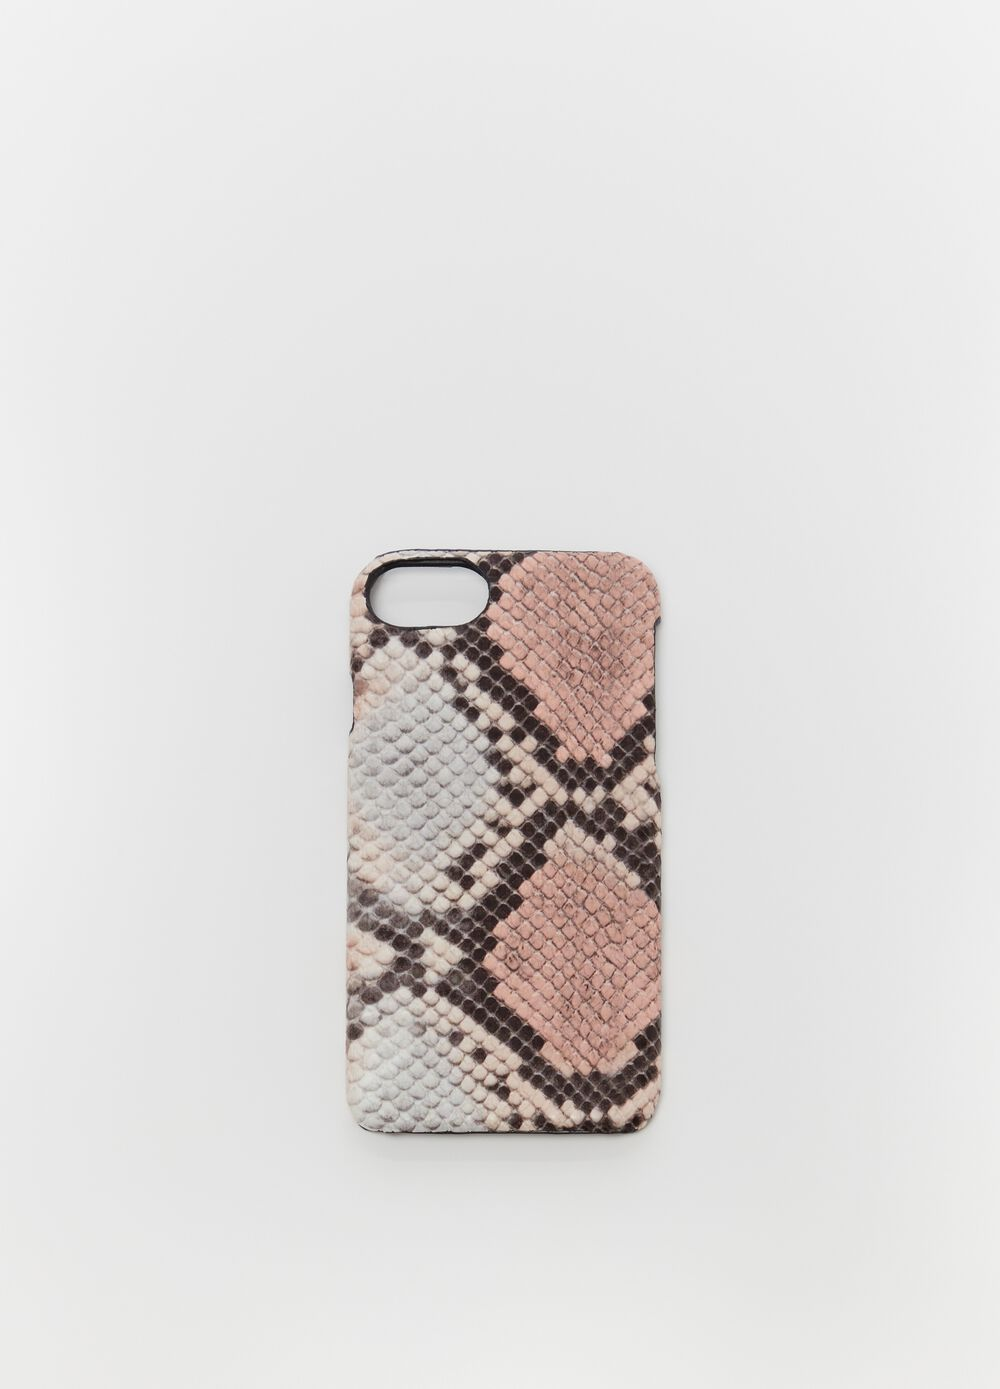 Funda para iPhone estampado reptil